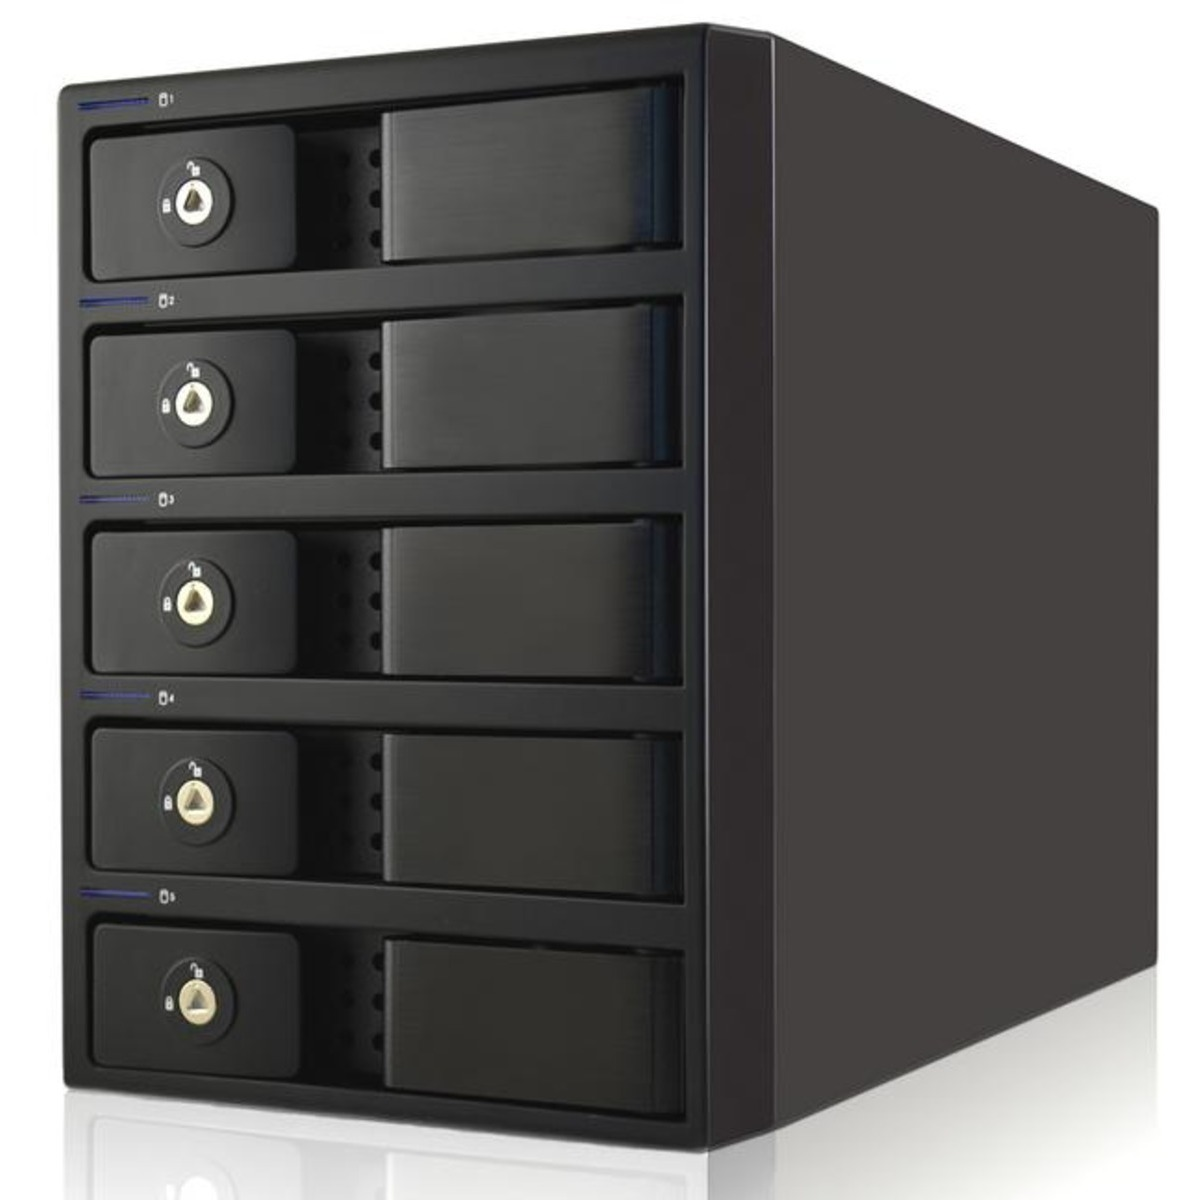 buy $621 OYEN Mobius FireWire 800 eSATA USB 3.0 RAID 10tb Desktop DAS - Direct Attached Storage Device 5x2000gb Western Digital Blue WD20EZRZ 3.5 5400rpm SATA 6Gb/s HDD CONSUMER Class Drives Installed - Burn-In Tested - nas headquarters buy network attached storage server device das new sale raid-5 free shipping usa Mobius FireWire 800 eSATA USB 3.0 RAID